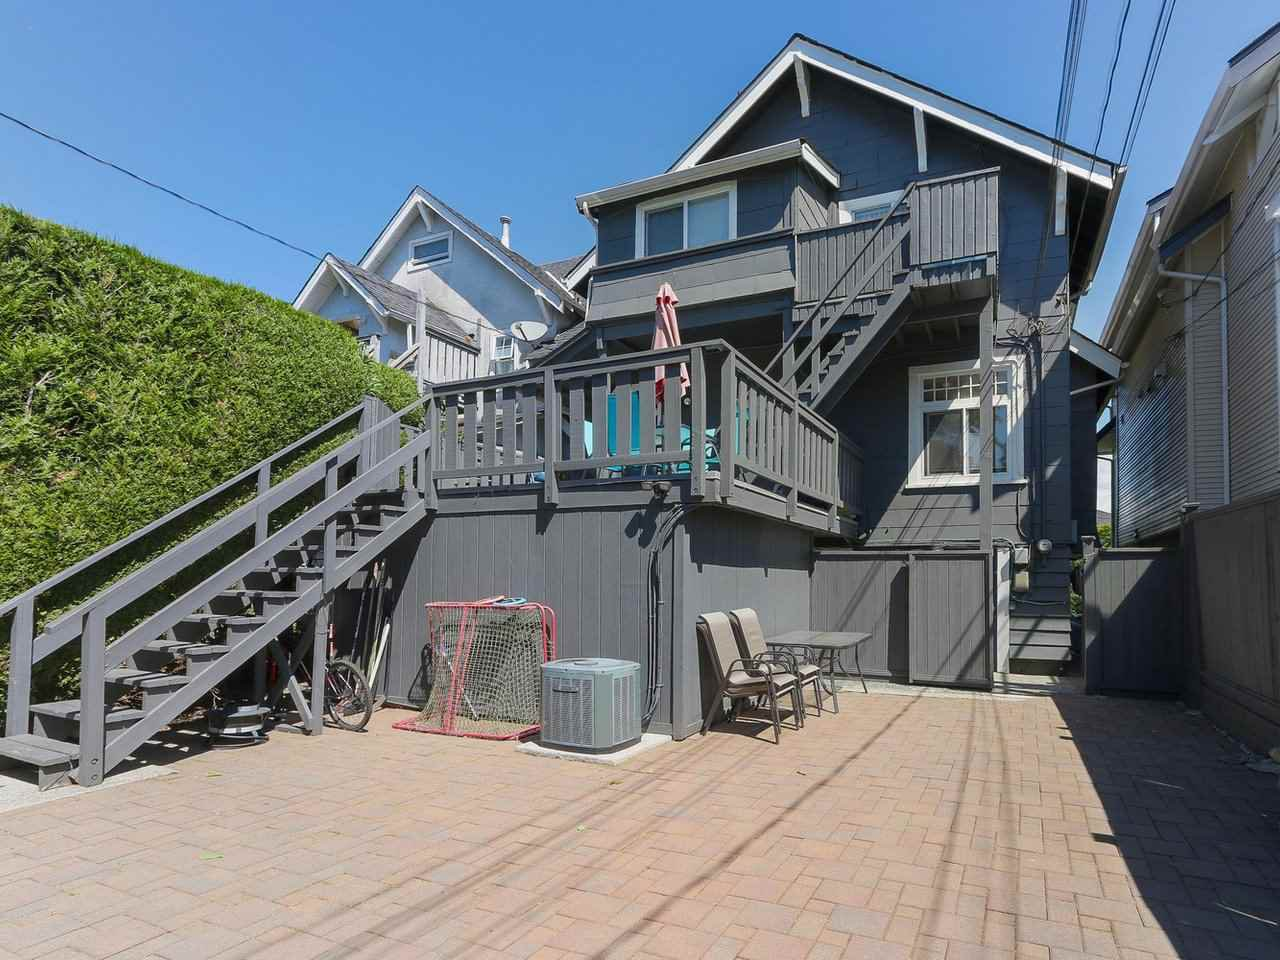 """Photo 21: Photos: 2610 W 10TH Avenue in Vancouver: Kitsilano House for sale in """"Kitsilano"""" (Vancouver West)  : MLS®# R2471992"""